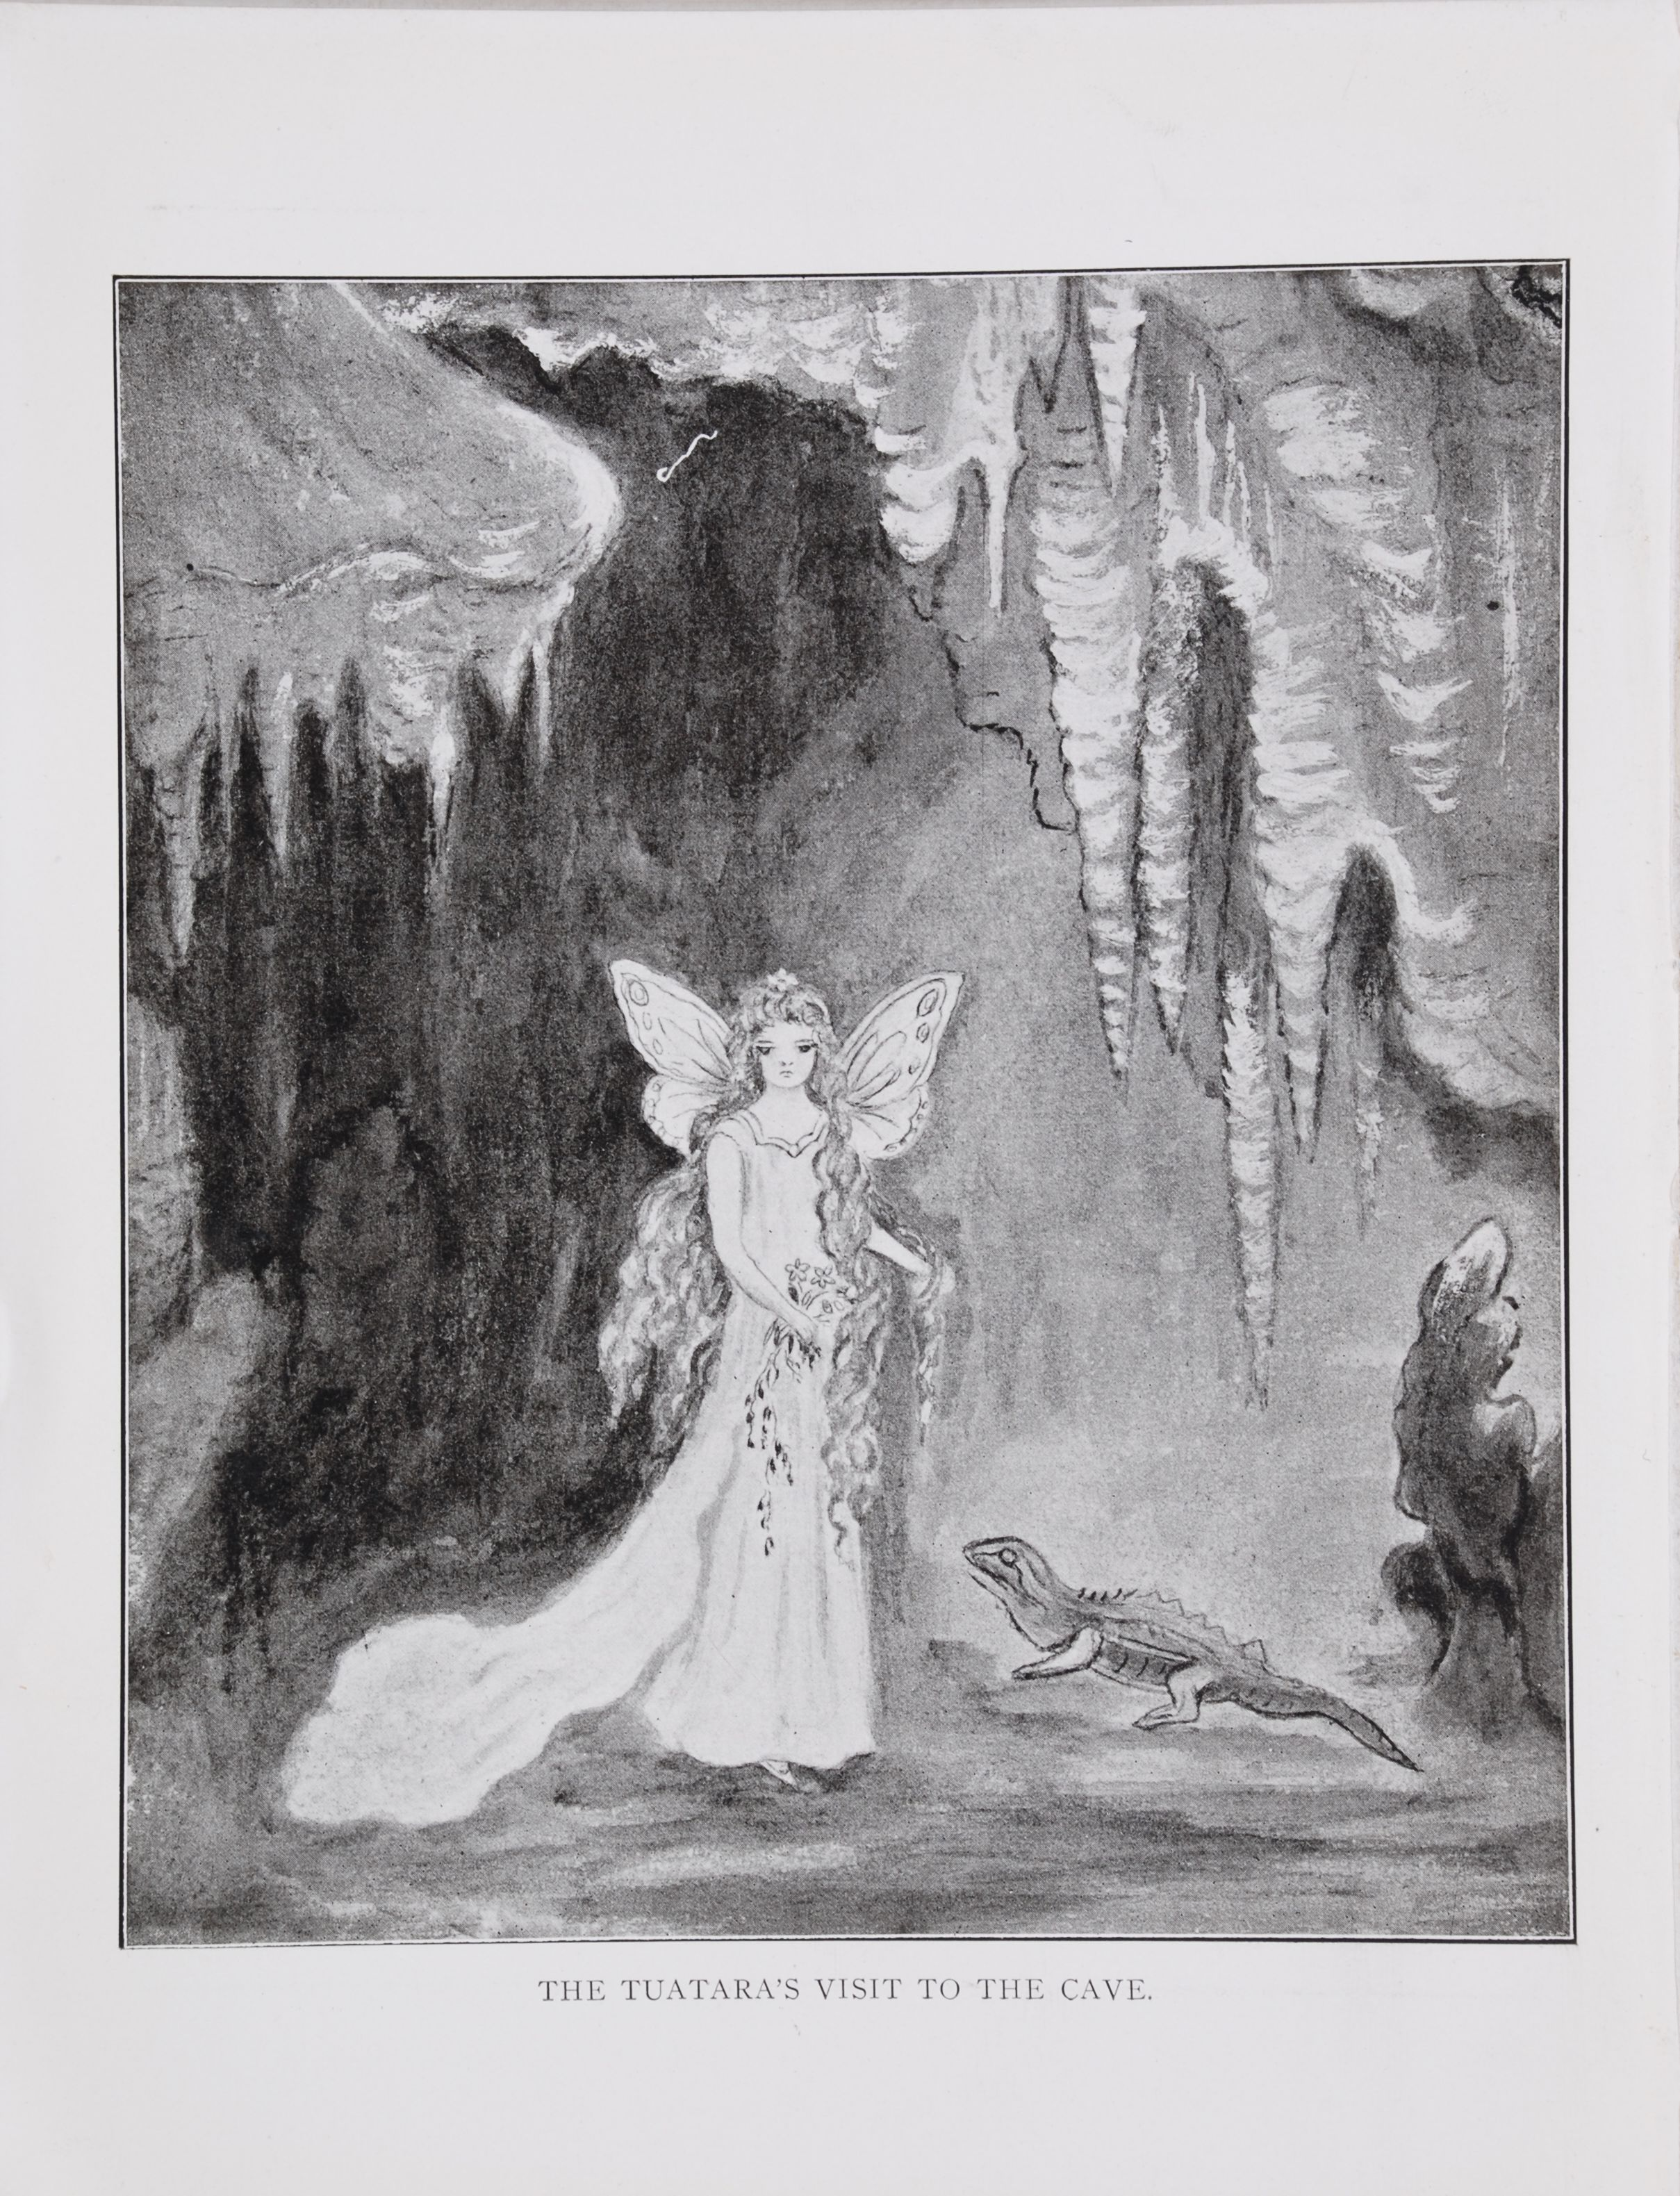 Sarah Rebecca Moore. Fairyland in New Zealand : a story of the caves by Mrs. Ambrose E. Moore, illustrated by Miss E.C. Harris. Auckland: Brett Printing and Publishing [1909].